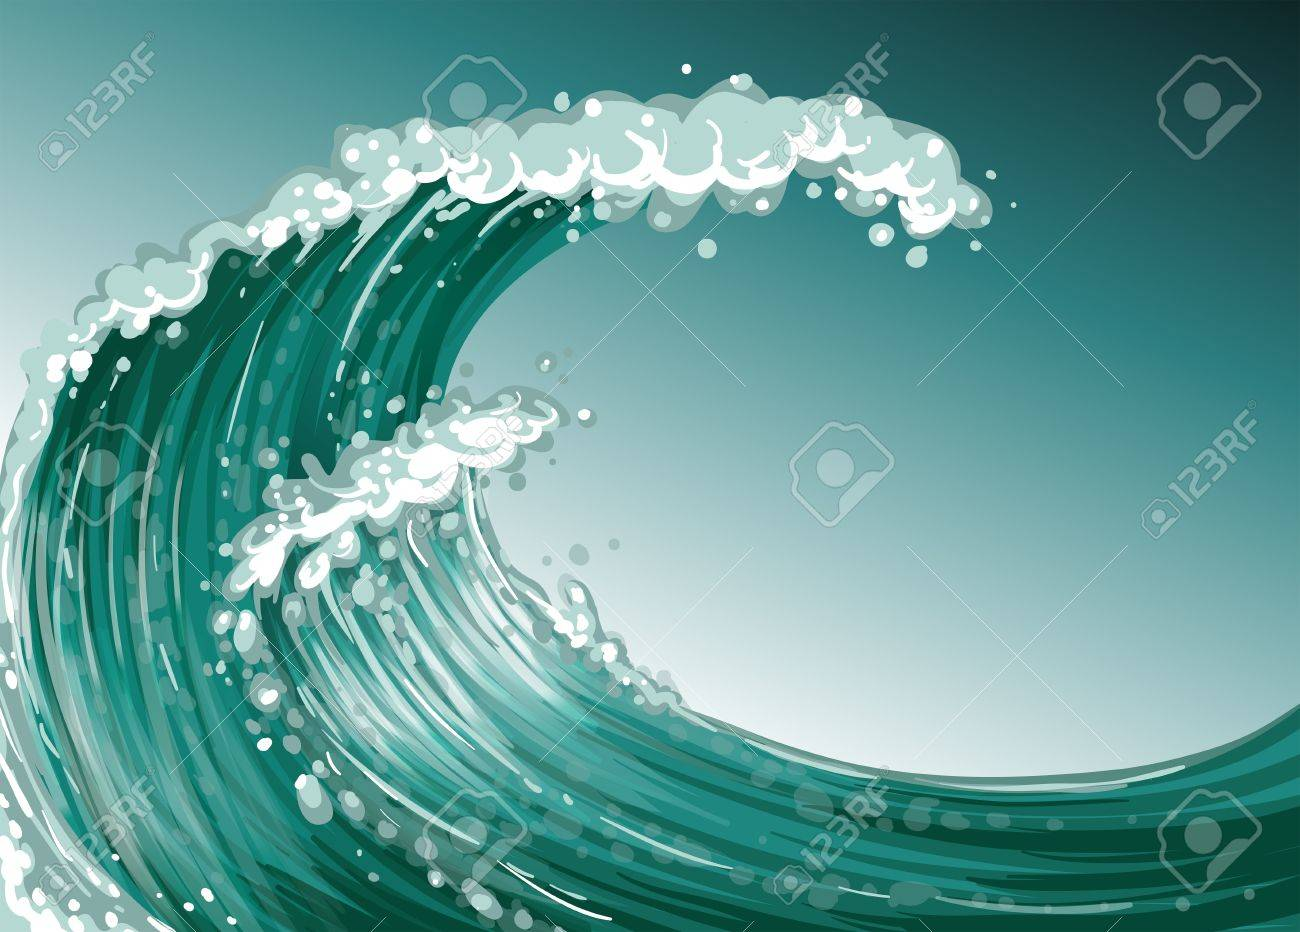 Illustration of a high wave at the sea Stock Vector - 20366669